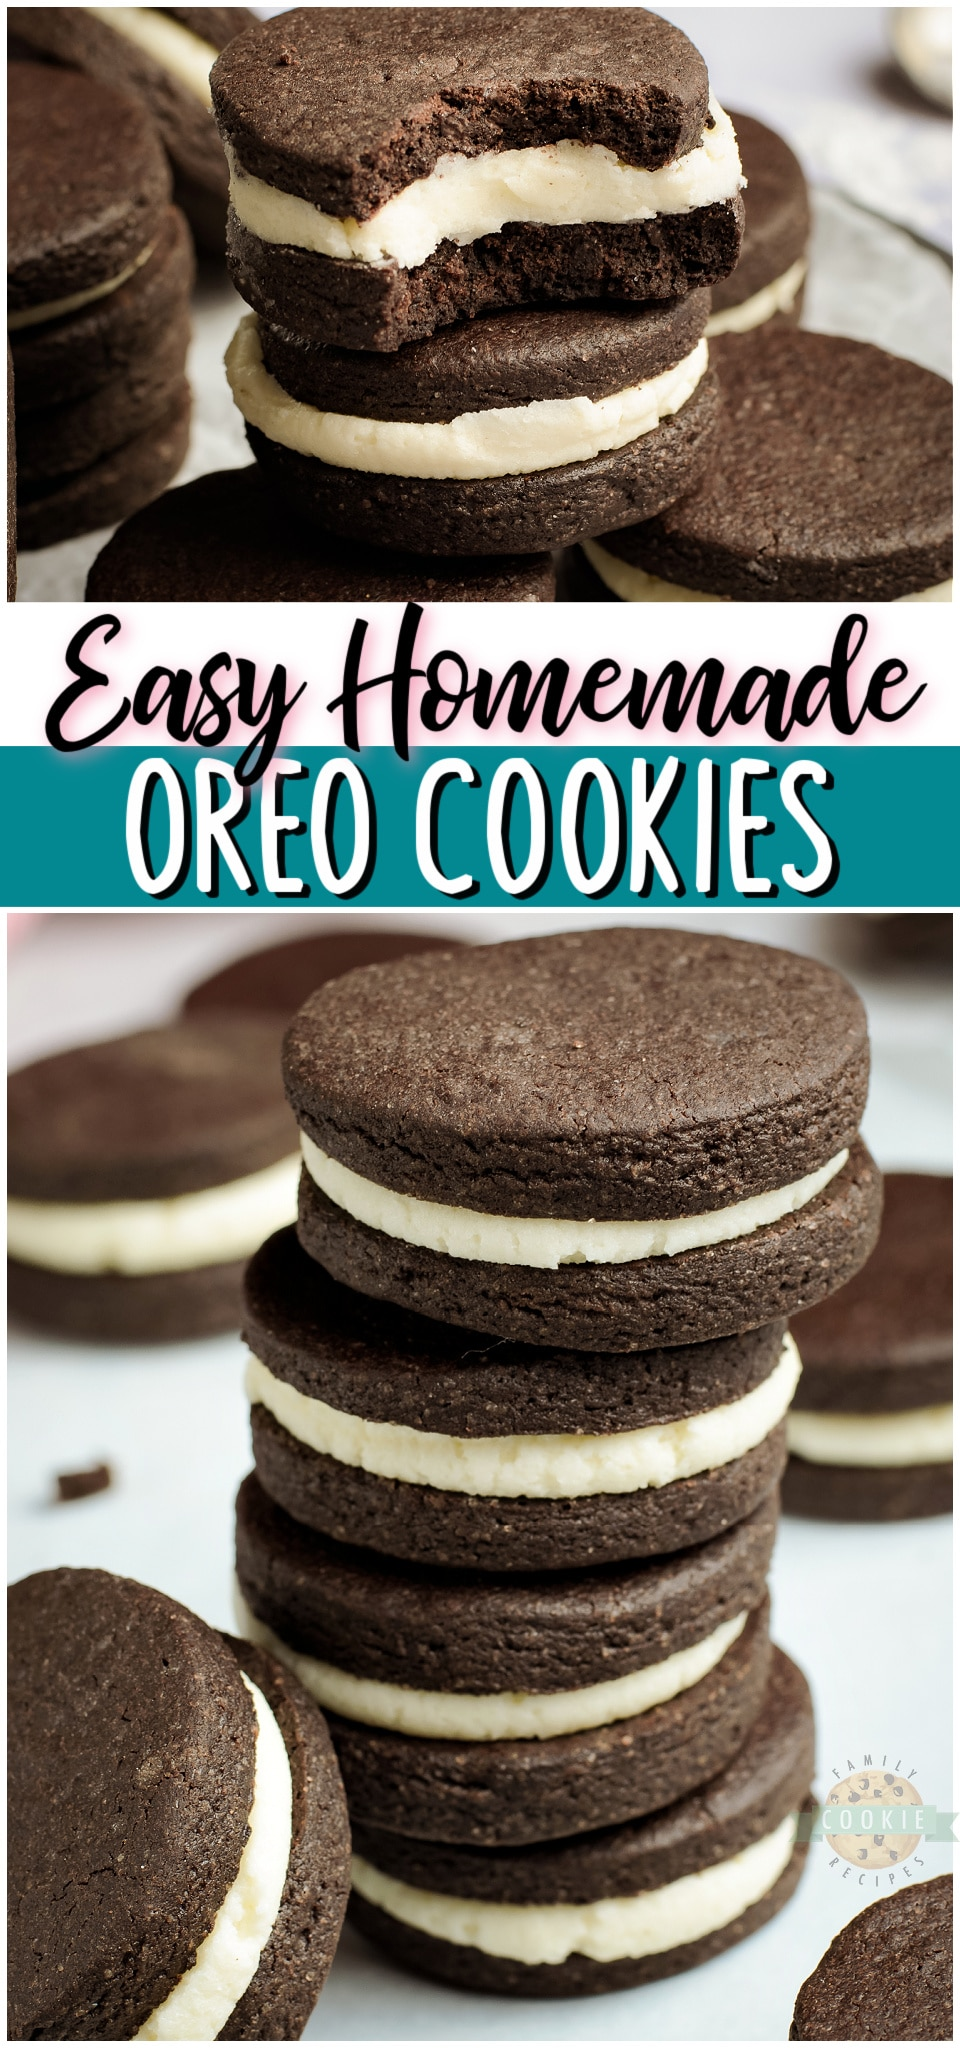 Homemade Oreo Cookies recipe for anyone who loves OREOS! Our Homemade Oreos taste even better with the chocolaty cookies on the outside & buttery vanilla cream on the inside.